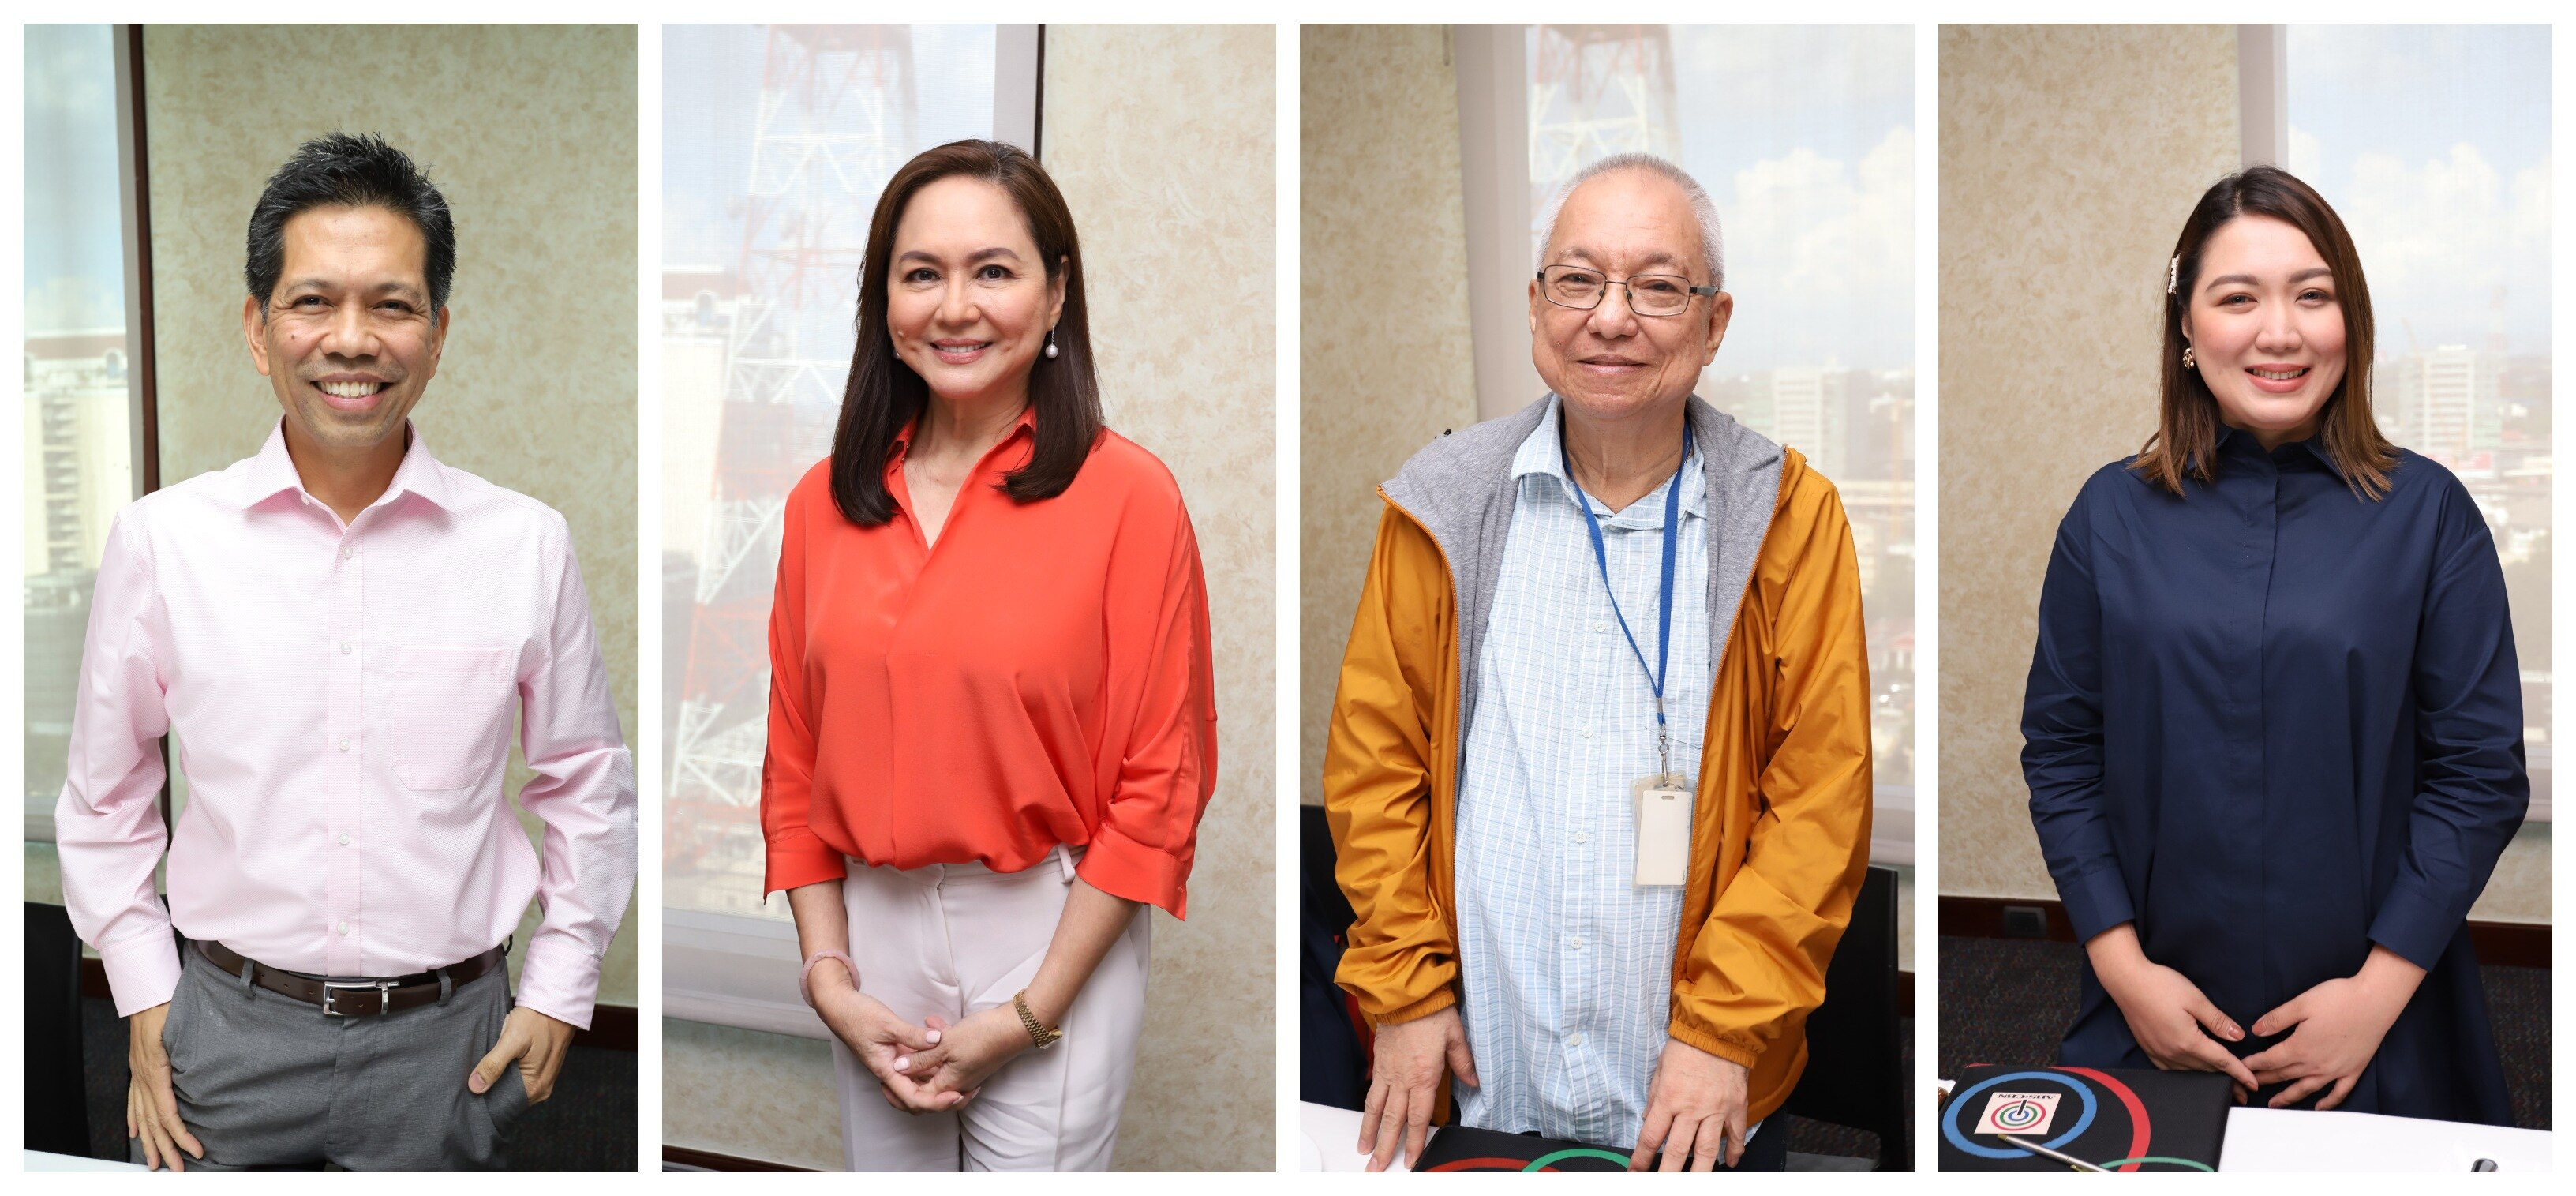 Charo, Ardy, Makiwander, and Ricky share words of wisdom to aspiring authors